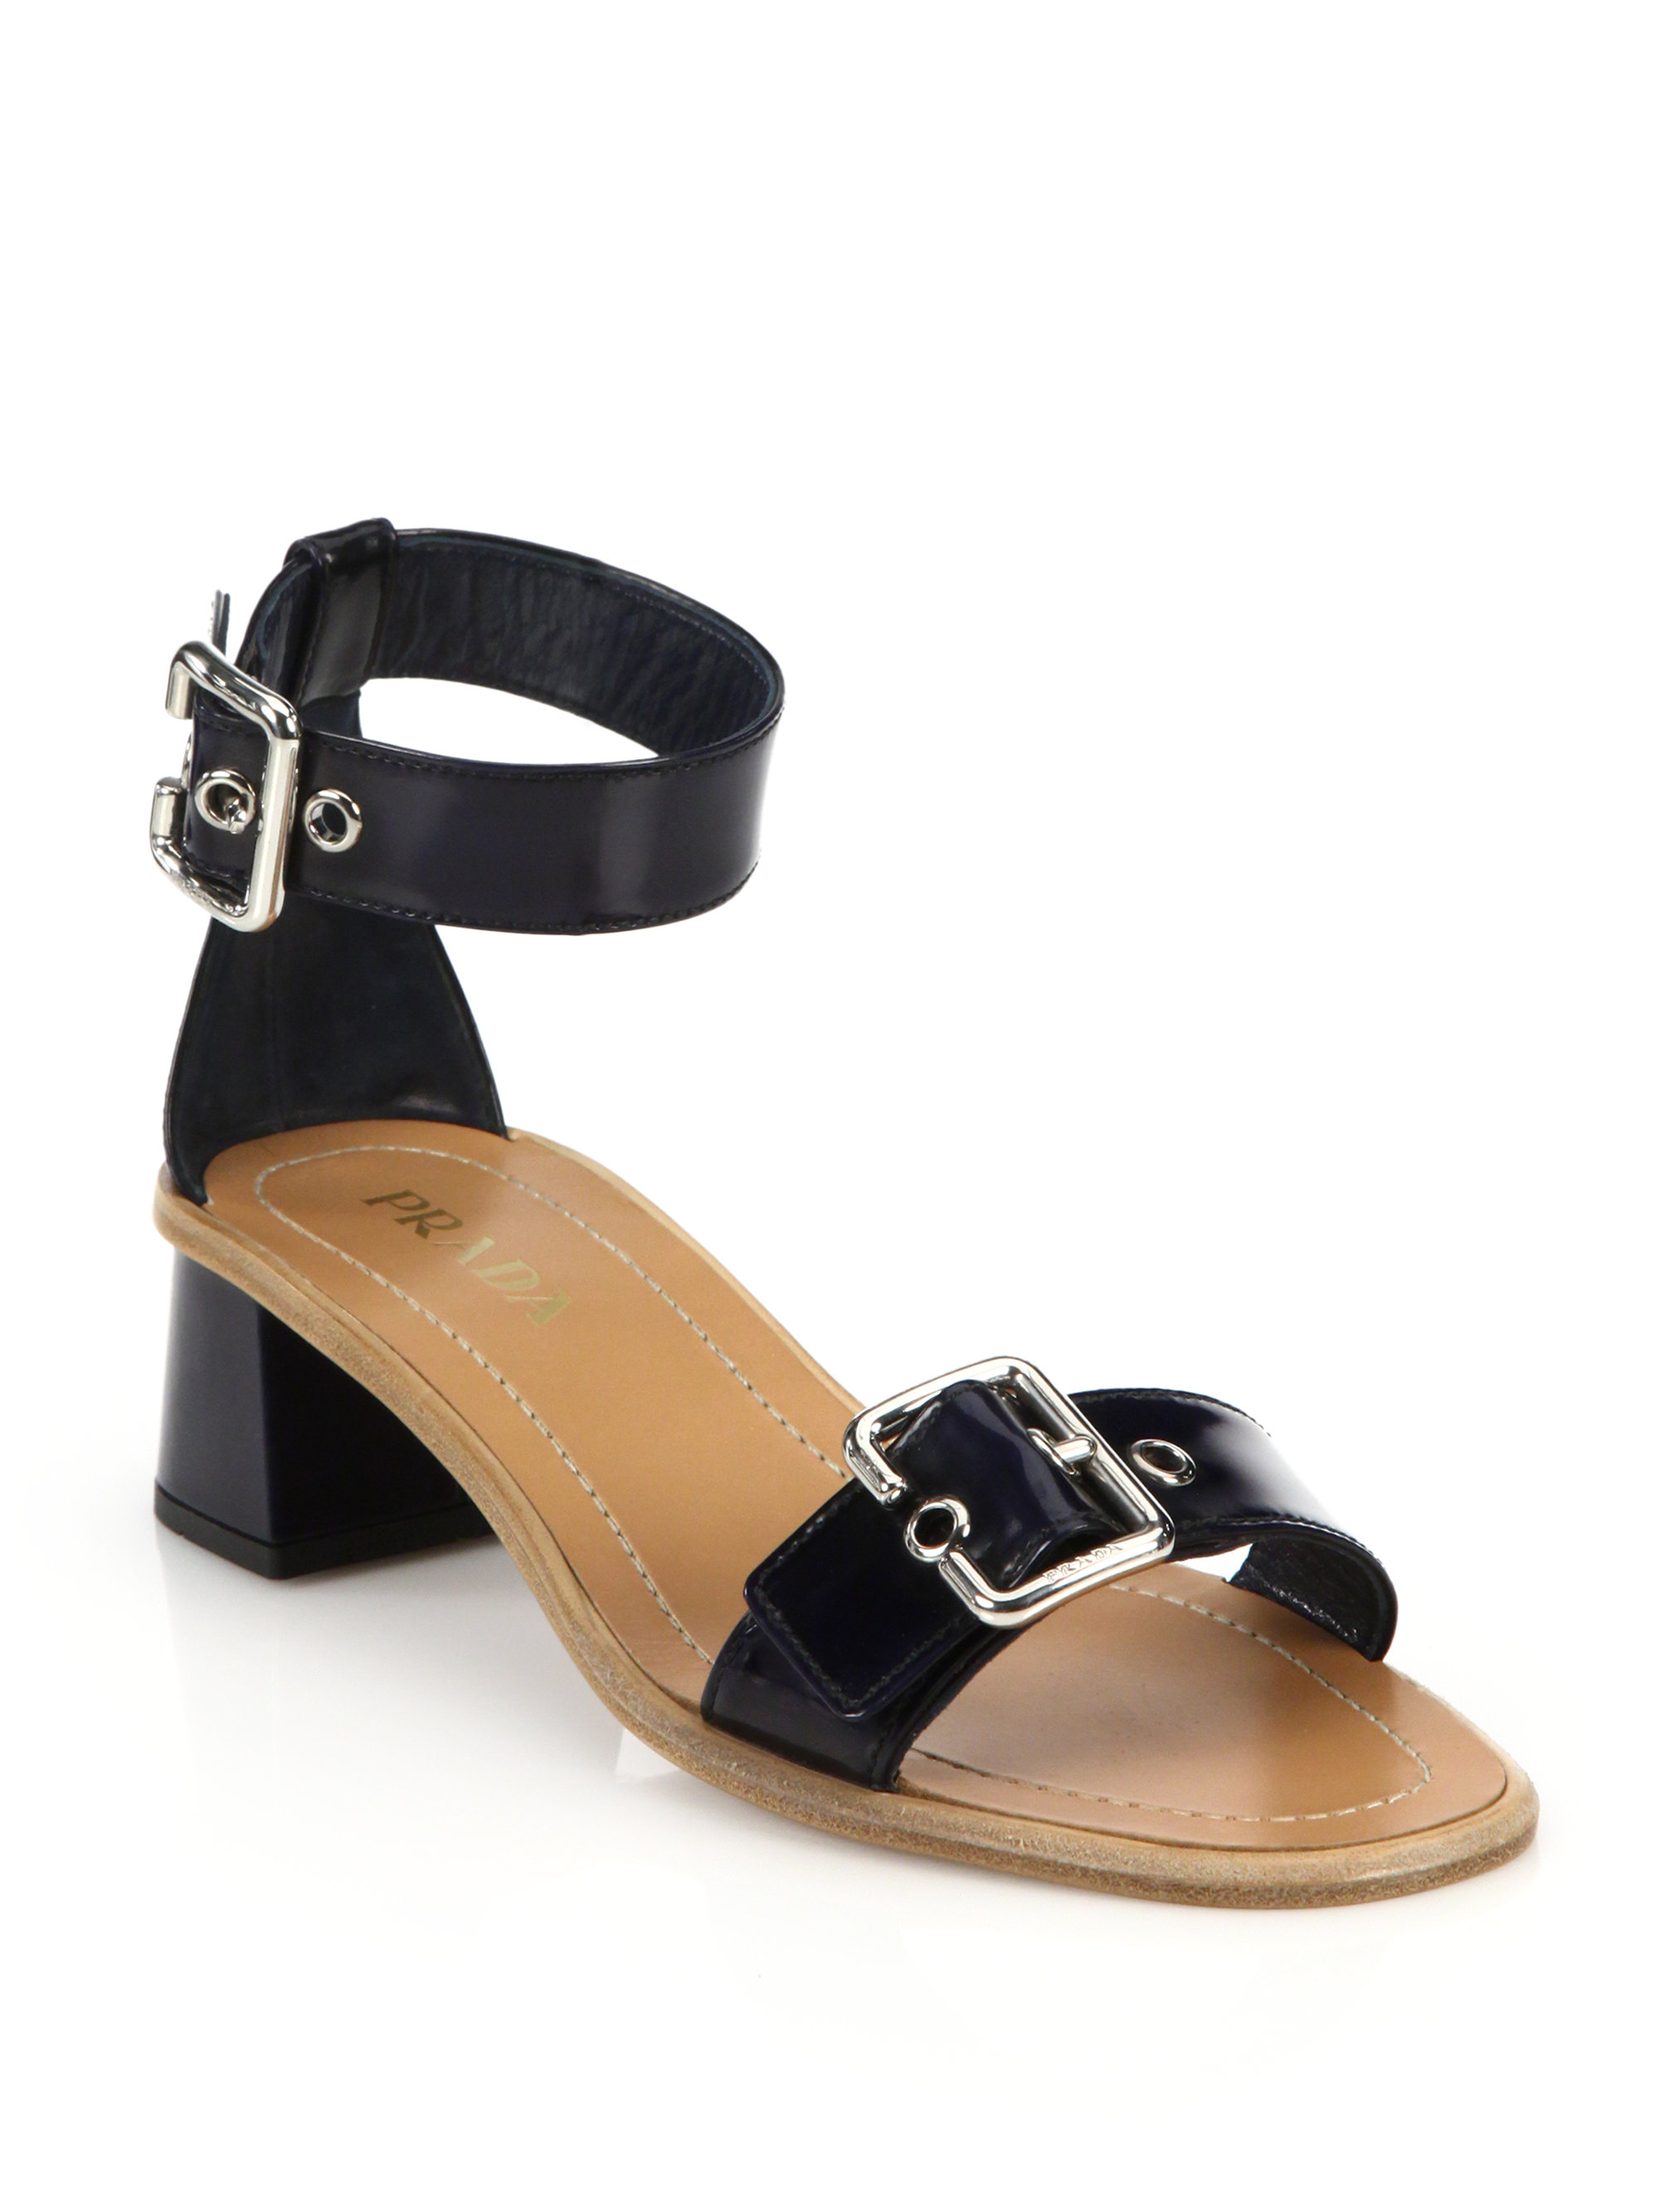 Prada buckled sandals cheap with mastercard with paypal low price U32kW